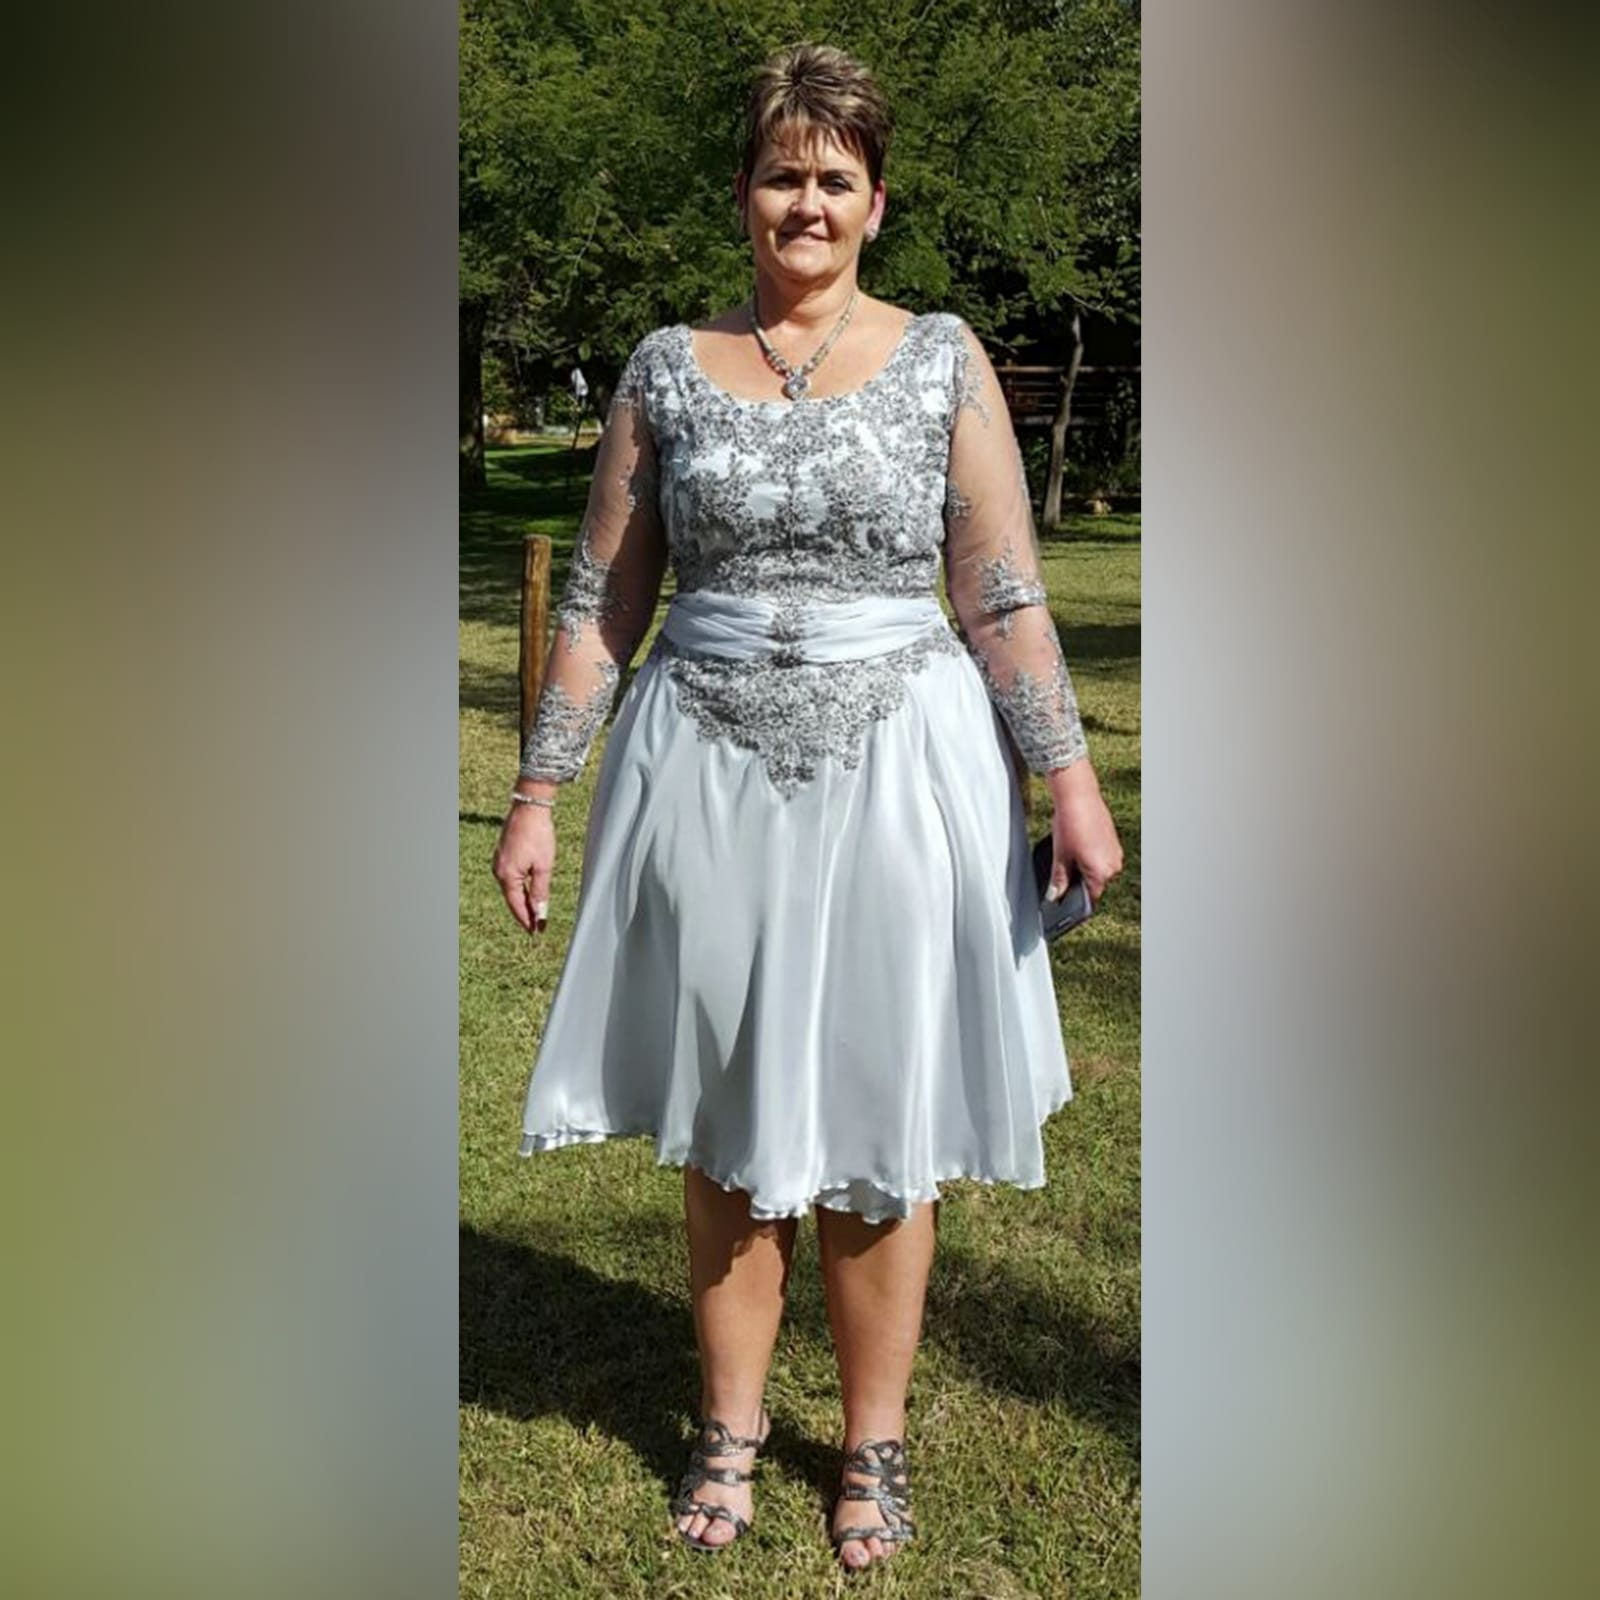 Grey knee length mother of the bride dress 1 grey knee length mother of the bride dress detailed with a ruched belt and lace on the bodice and sleeves.